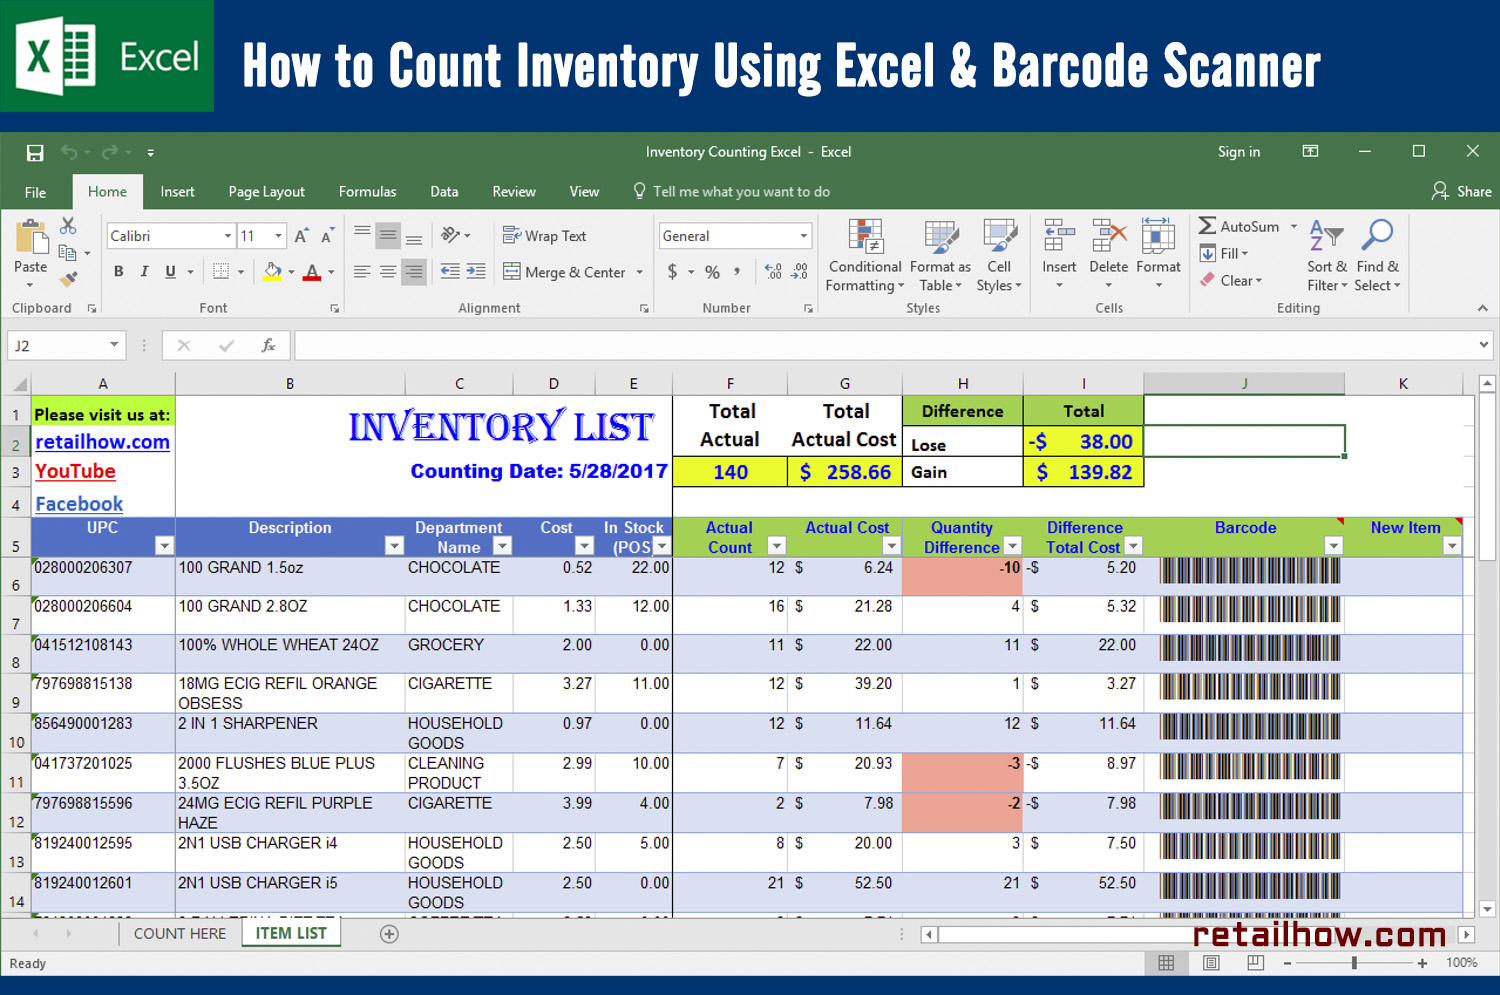 How To Count Inventory Using Excel Barcode Scanner Retailhow - Barcode scanner invoice software